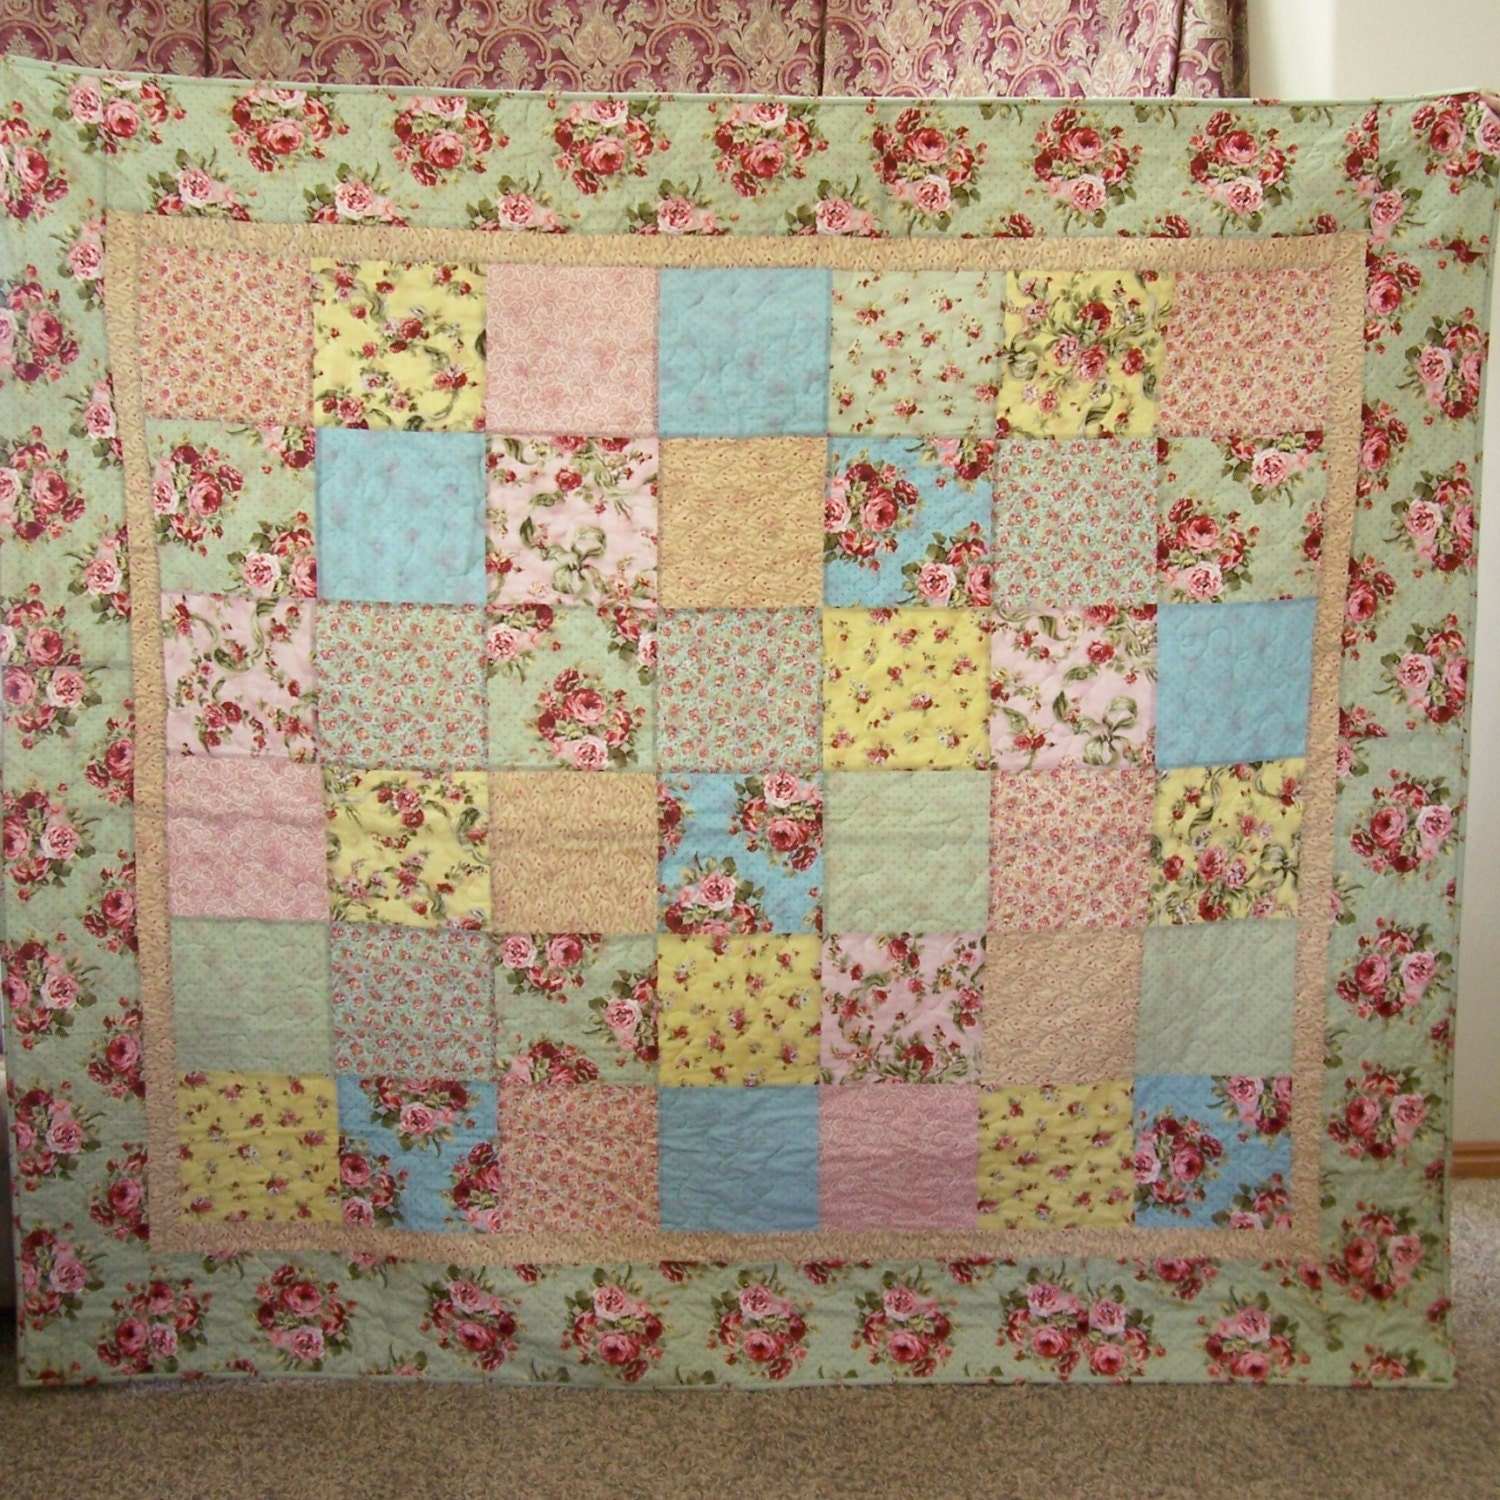 Layer Cake Quilt Definition : Patchwork Quilt Multicolored Layer Cake in Pink Yellow Blue